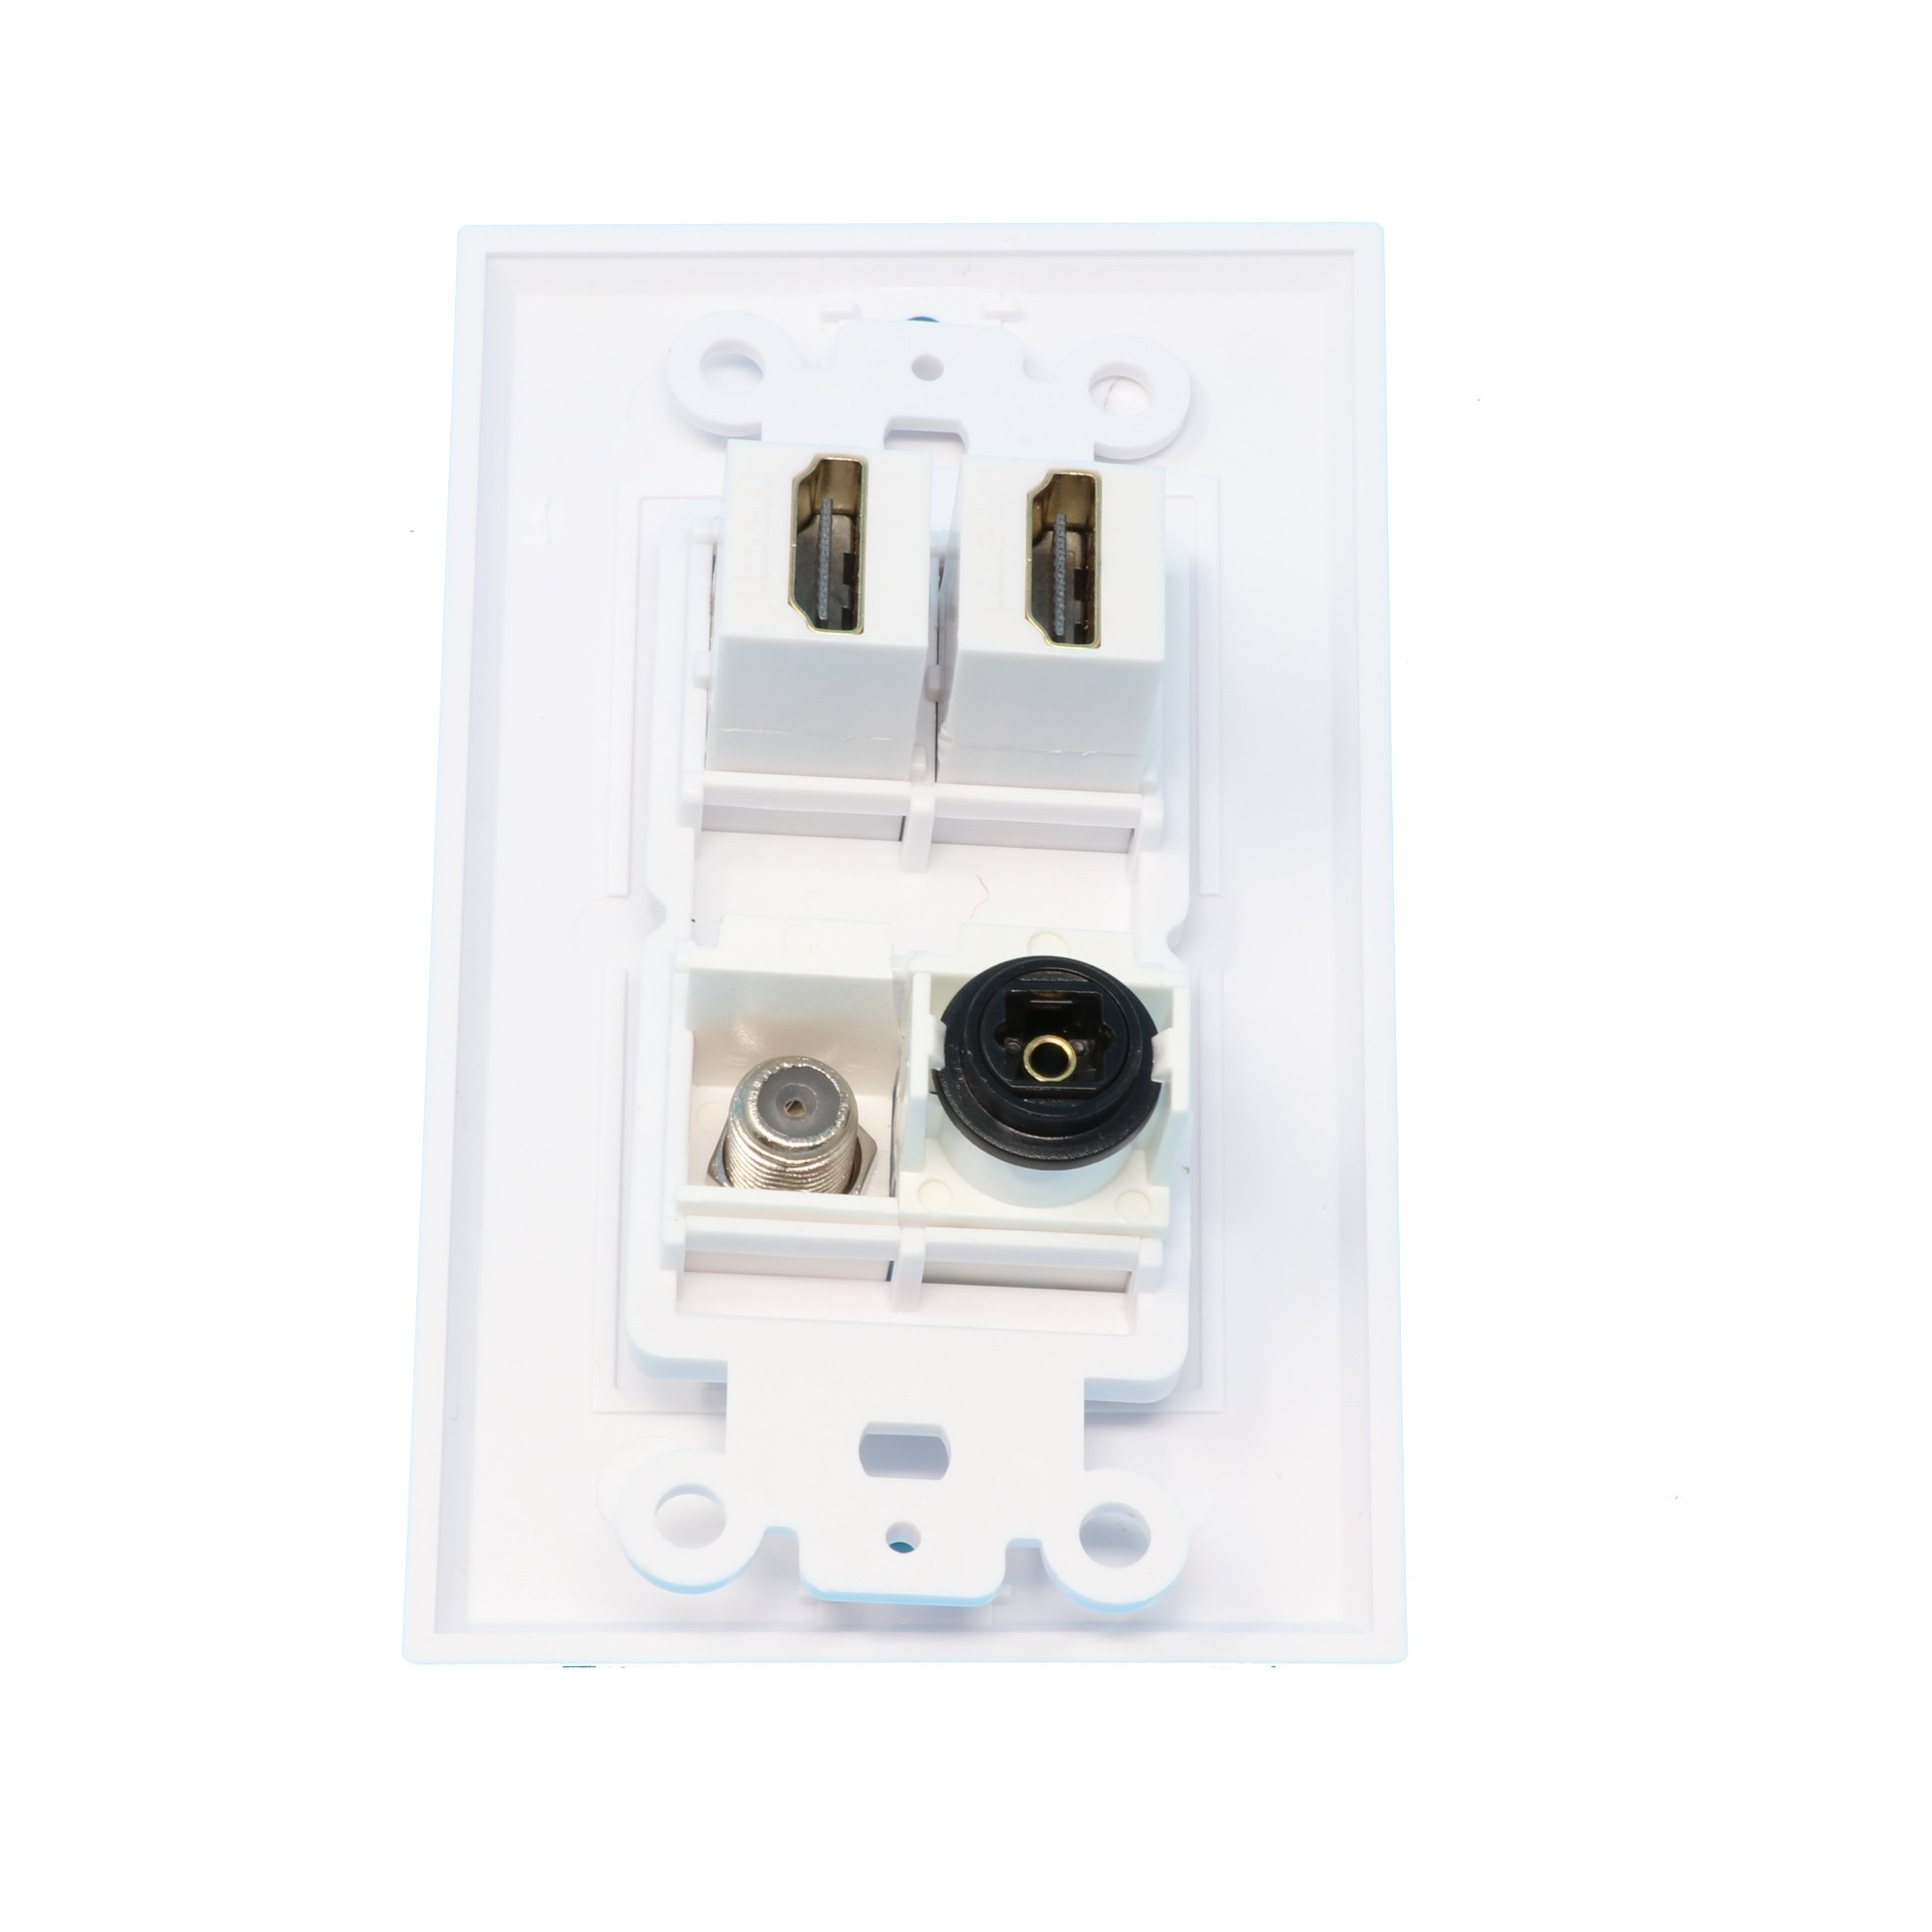 RiteAV - 2 Port HDMI 1 Port Coax Cable TV- F-Type 1 Port Toslink Wall Plate Decorative Wall Plate - White